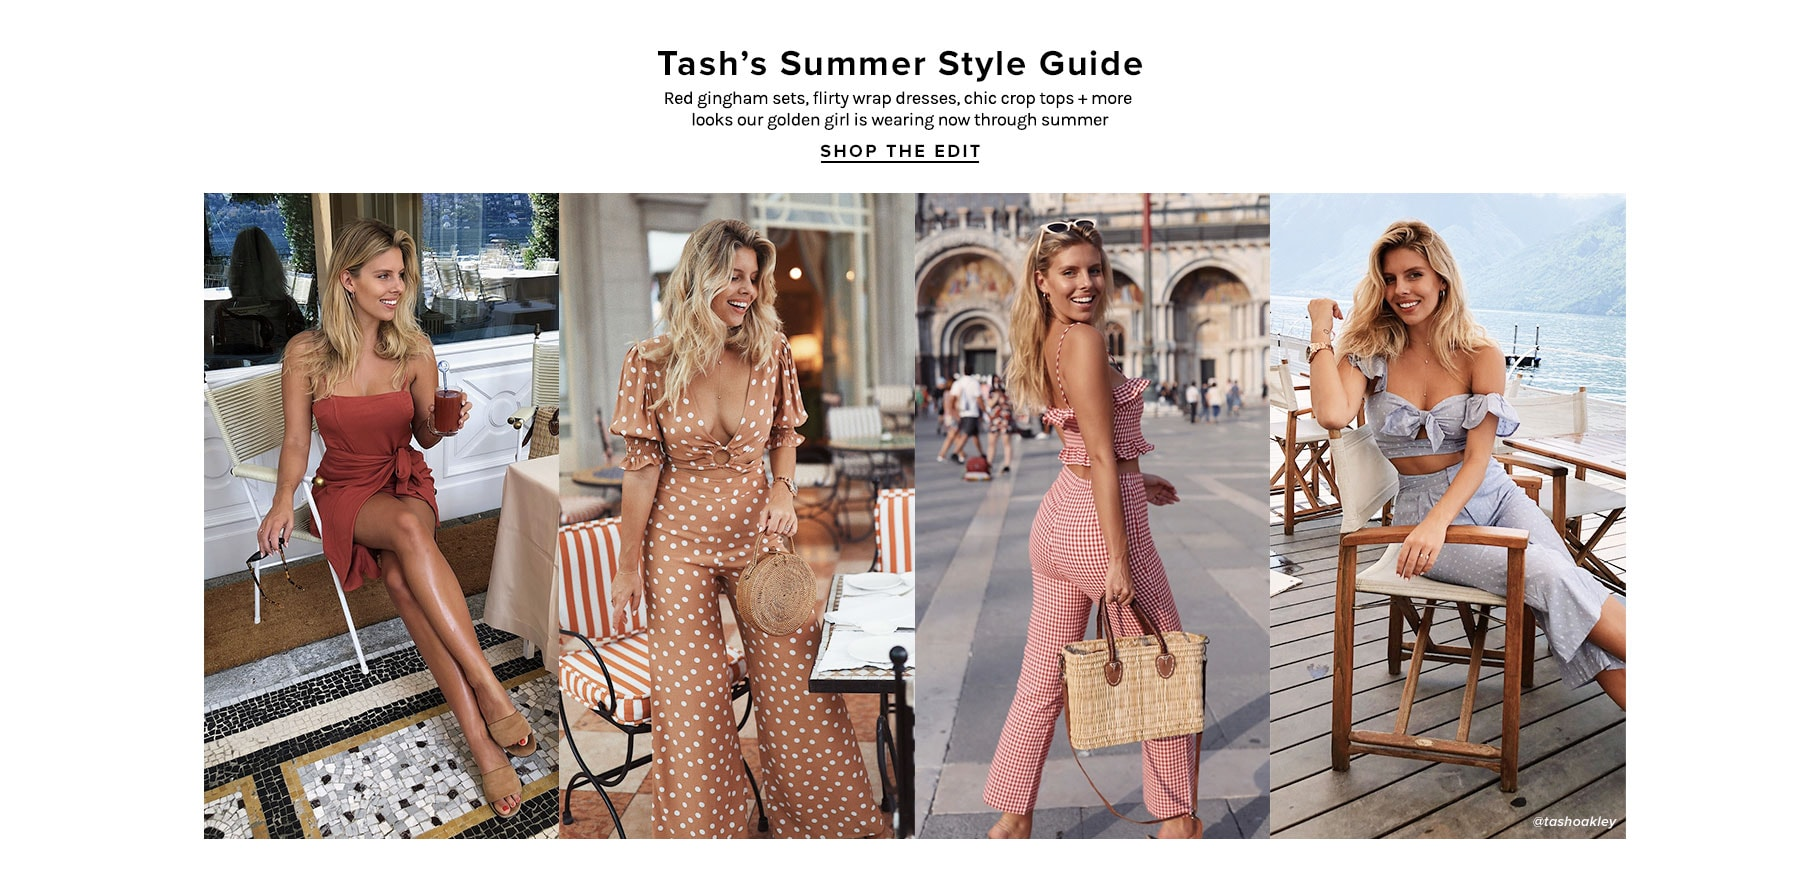 Tash's Summer Style Guide. Red gingham sets, flirty wrap dresses, chic crop tops + more looks our golden girl is wearing now through summer. Shop The Edit.